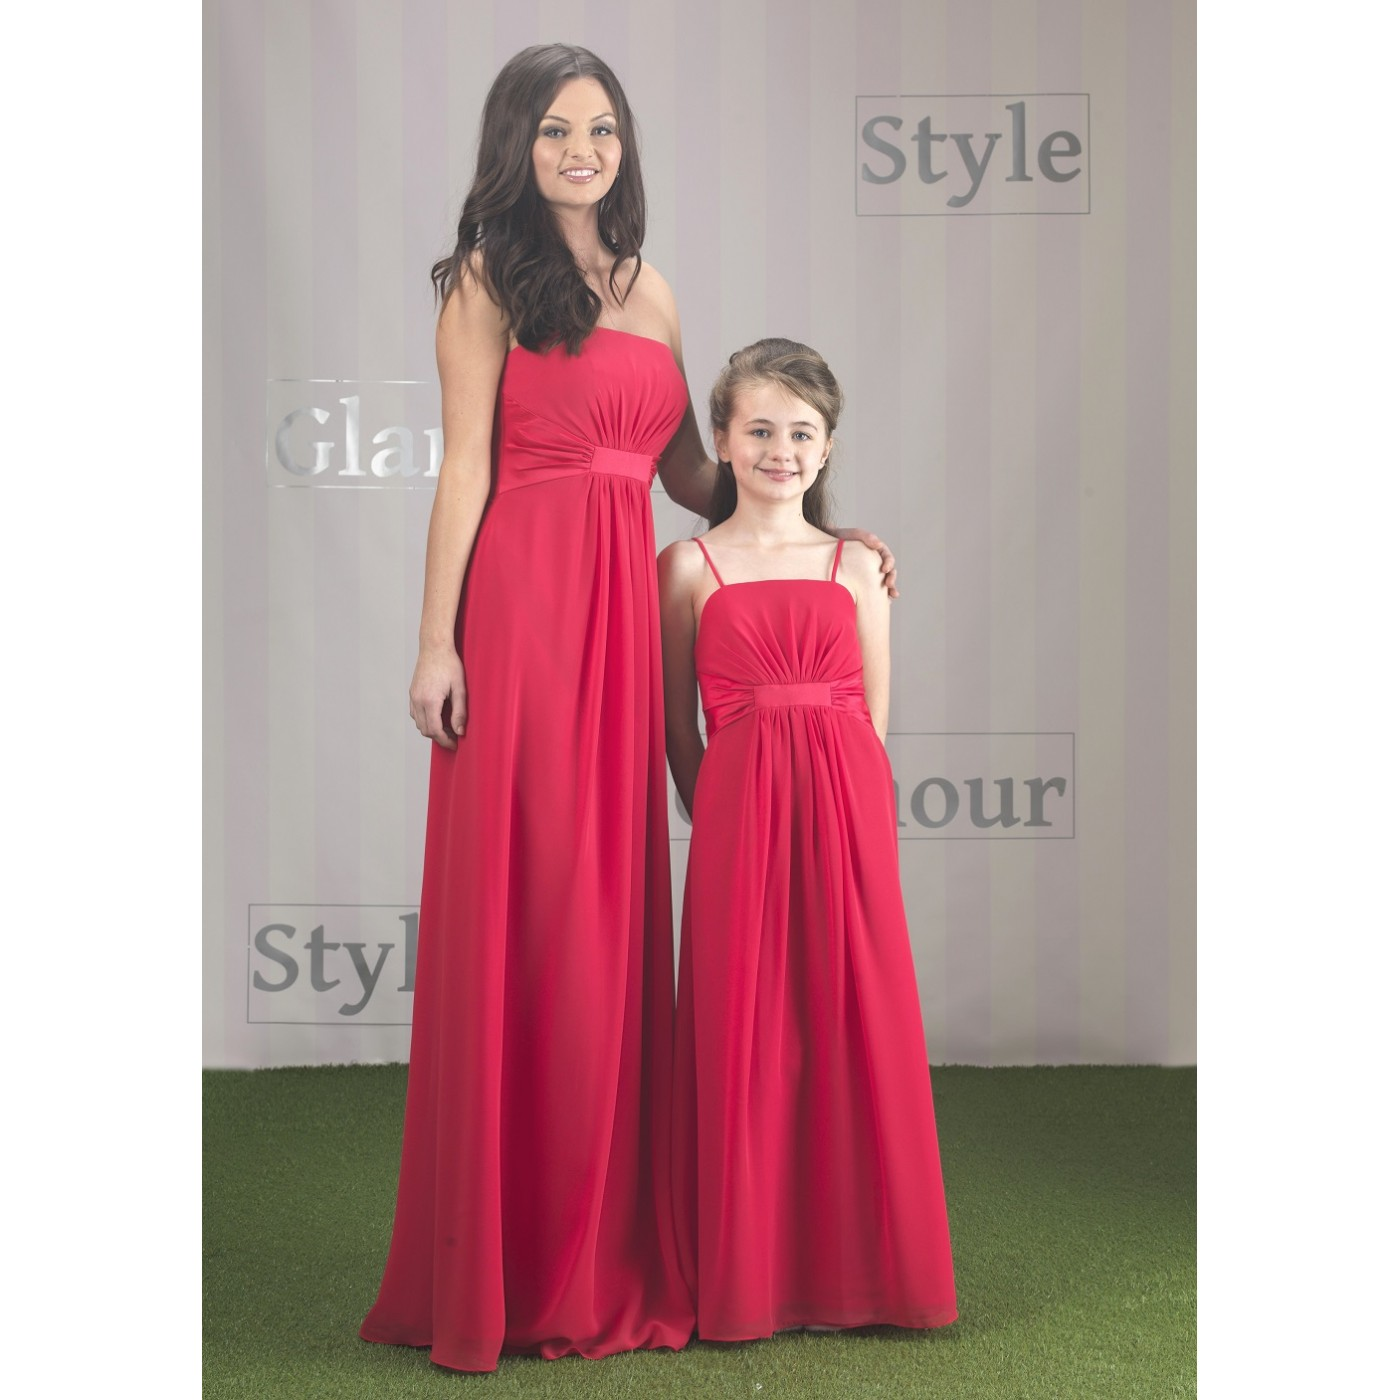 Linzi jay ek327 junior bridesmaid dress the dressy dress shop linzi jay ek327 junior bridesmaid dress ombrellifo Image collections